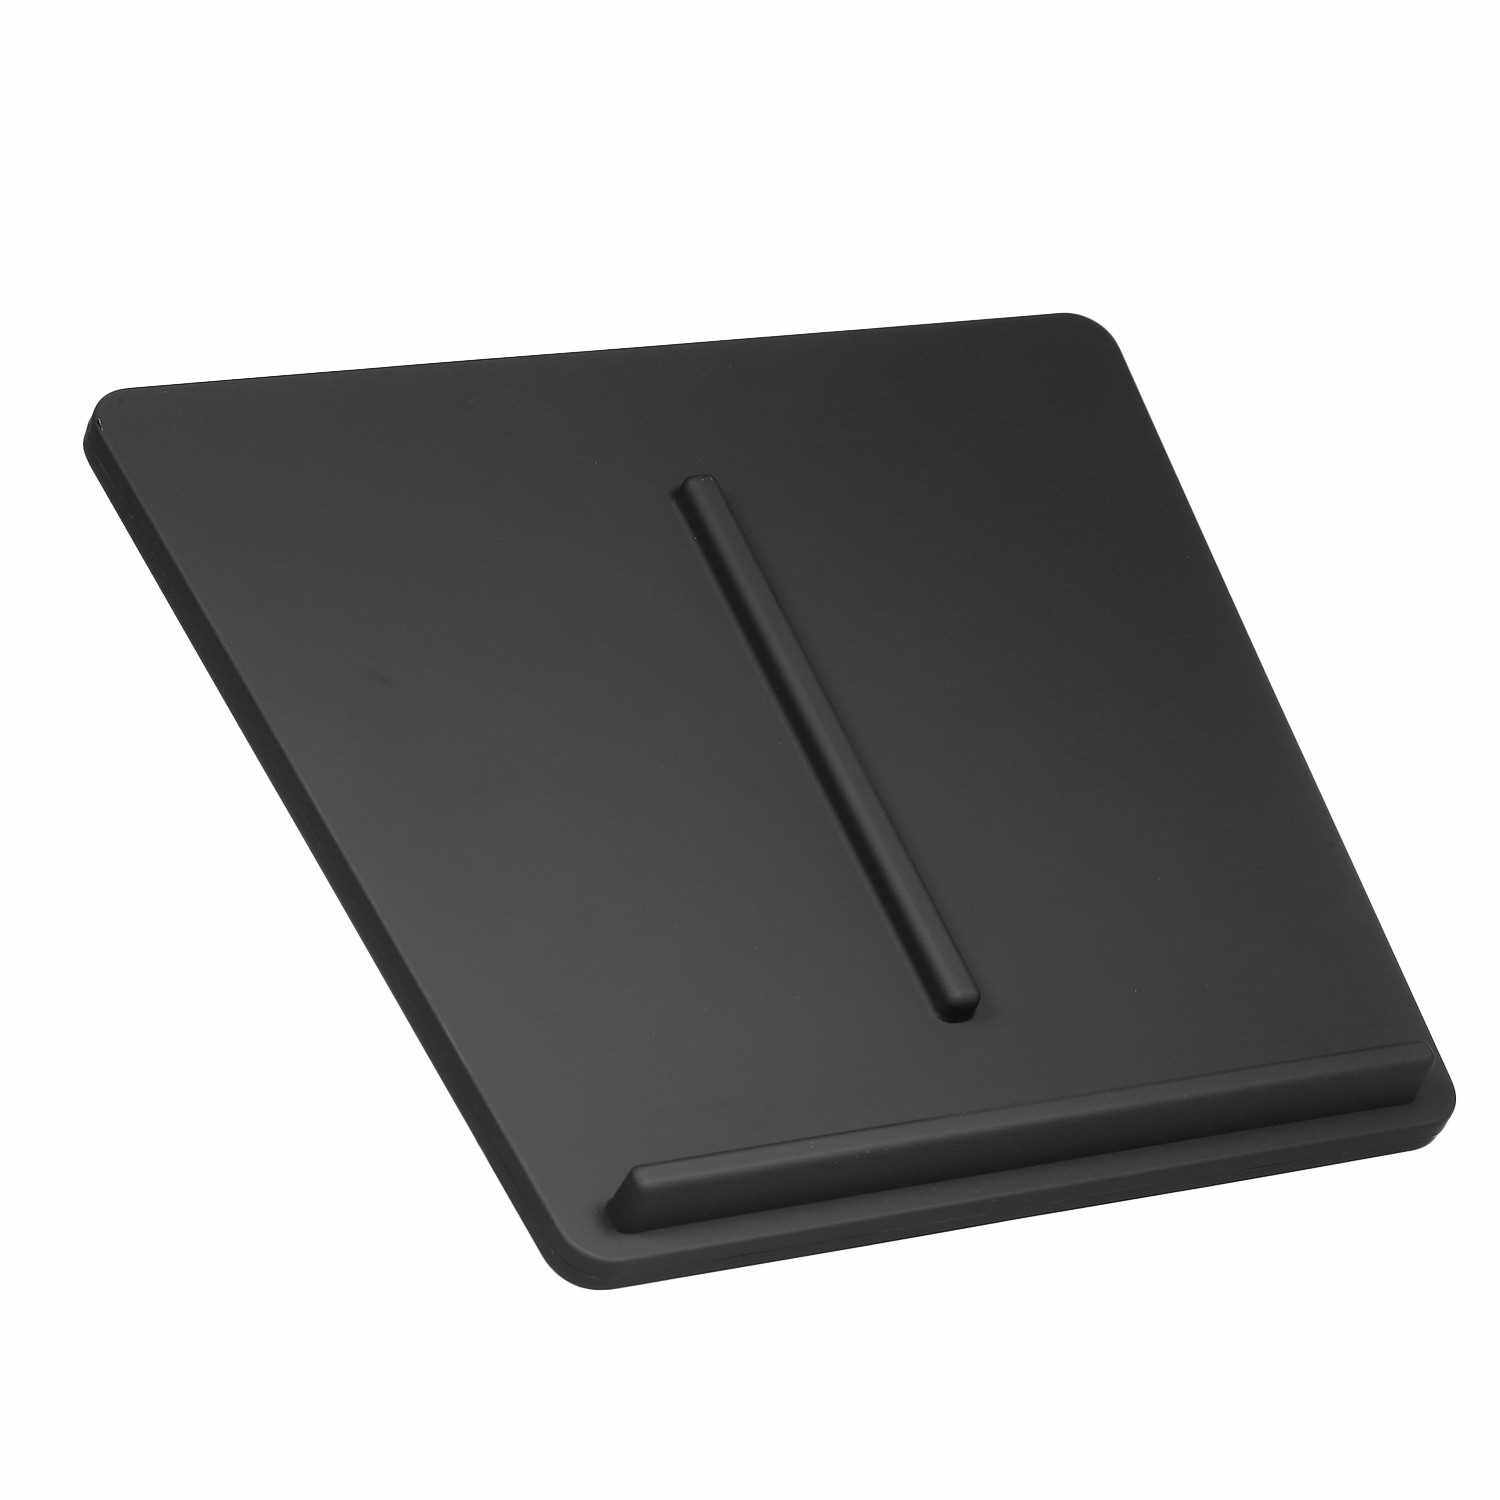 Wireless Charging Pad for Tesla Model 3 Car Accessories Customized Phone Charger Pad Panel Phone Holder Pad (Standard)